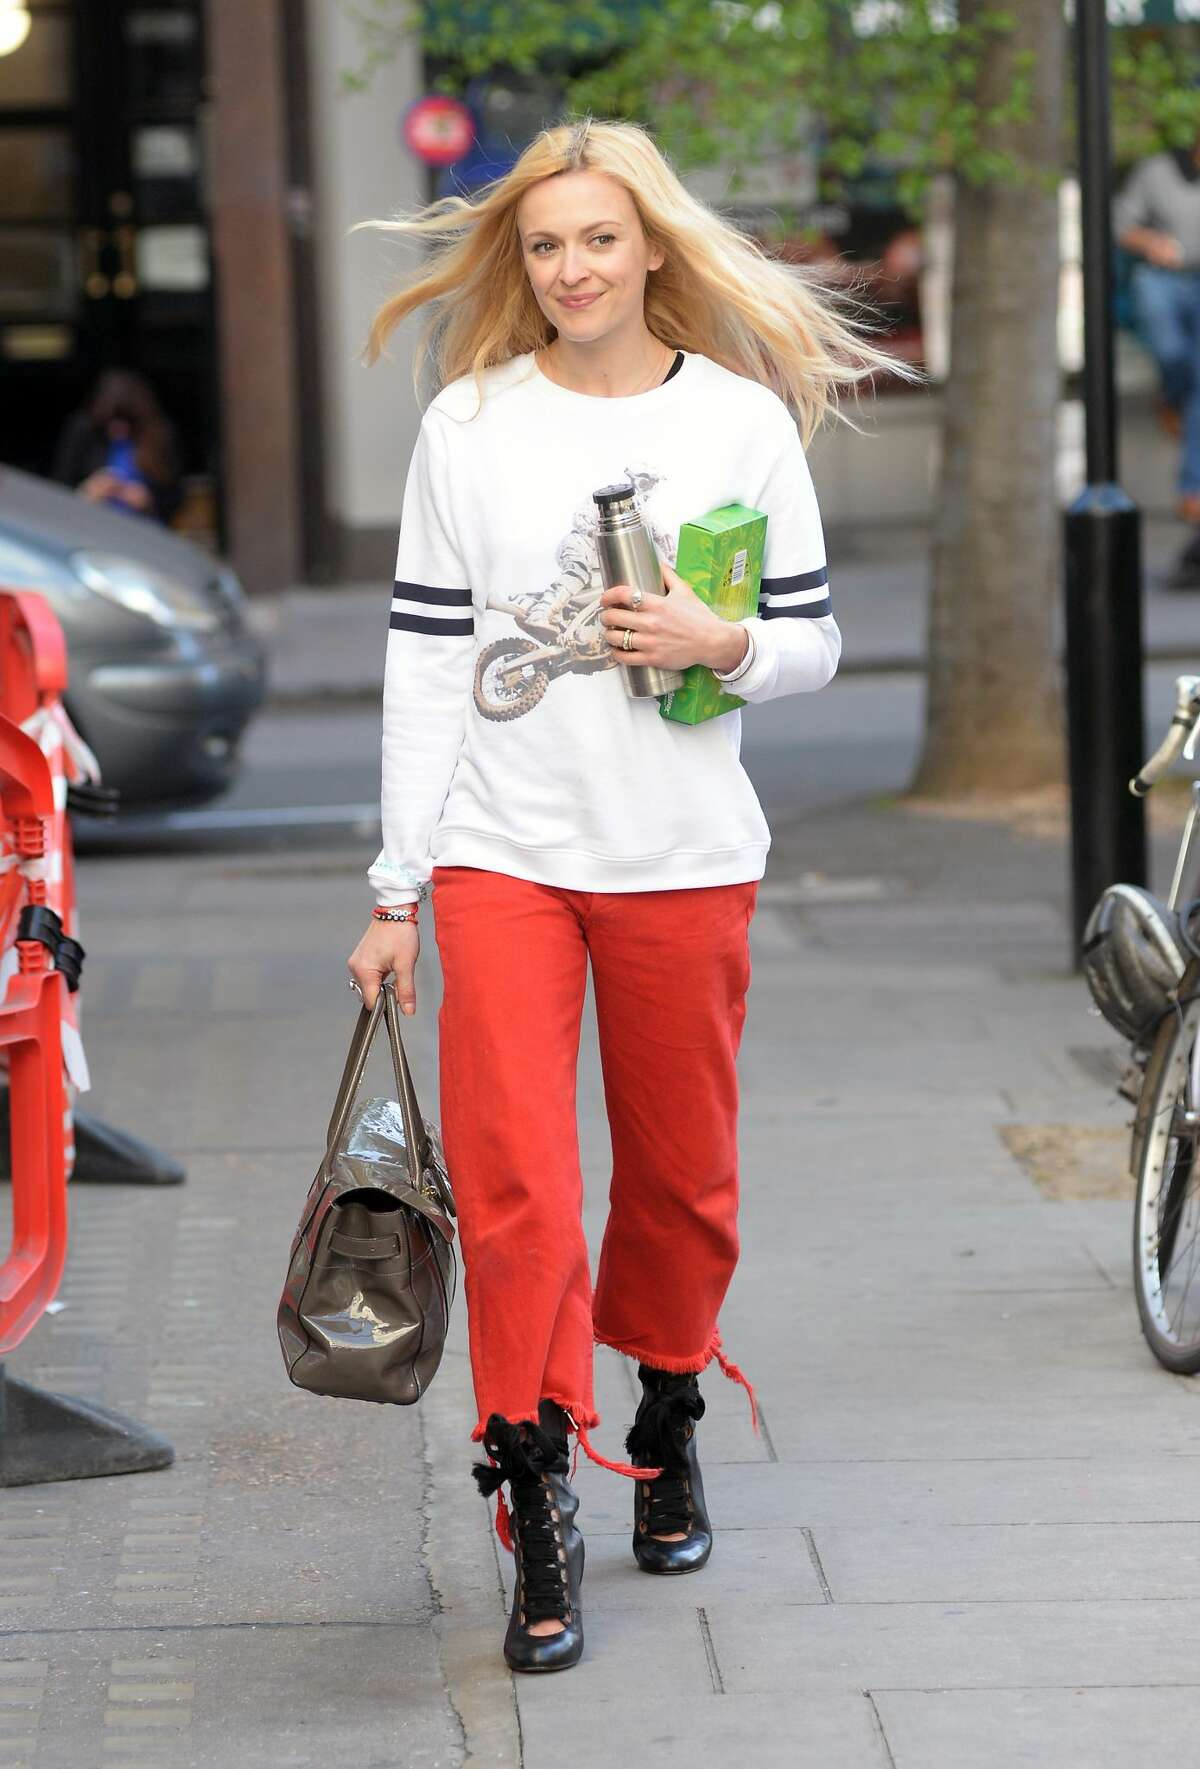 Fearne Cotton wears cut off sweatpants with heels and nails it.